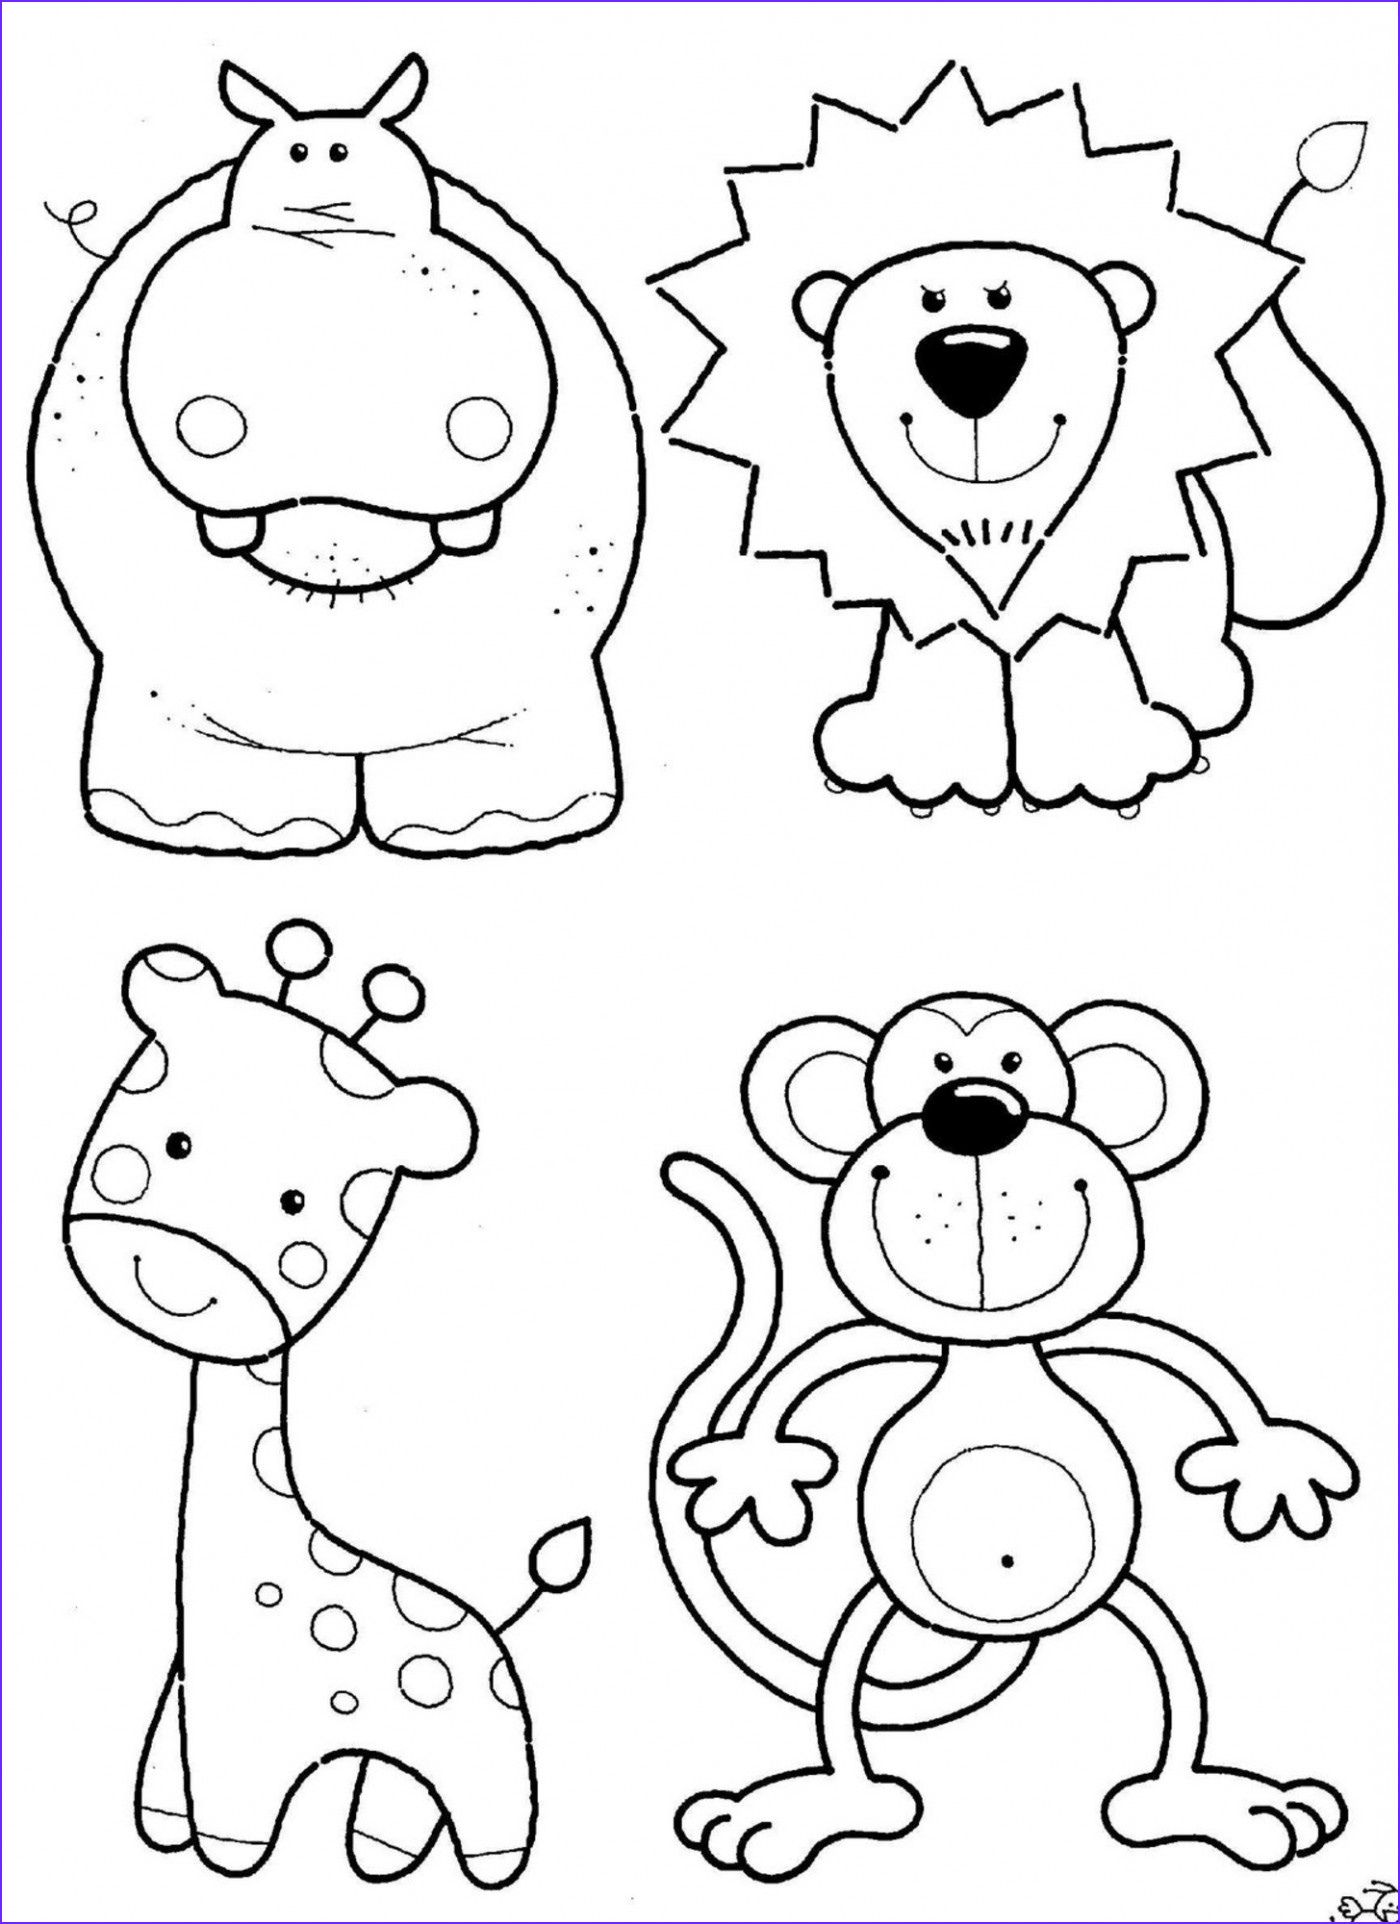 Animal Coloring Pages Printable Unique Photos Animal Coloring Pages 14